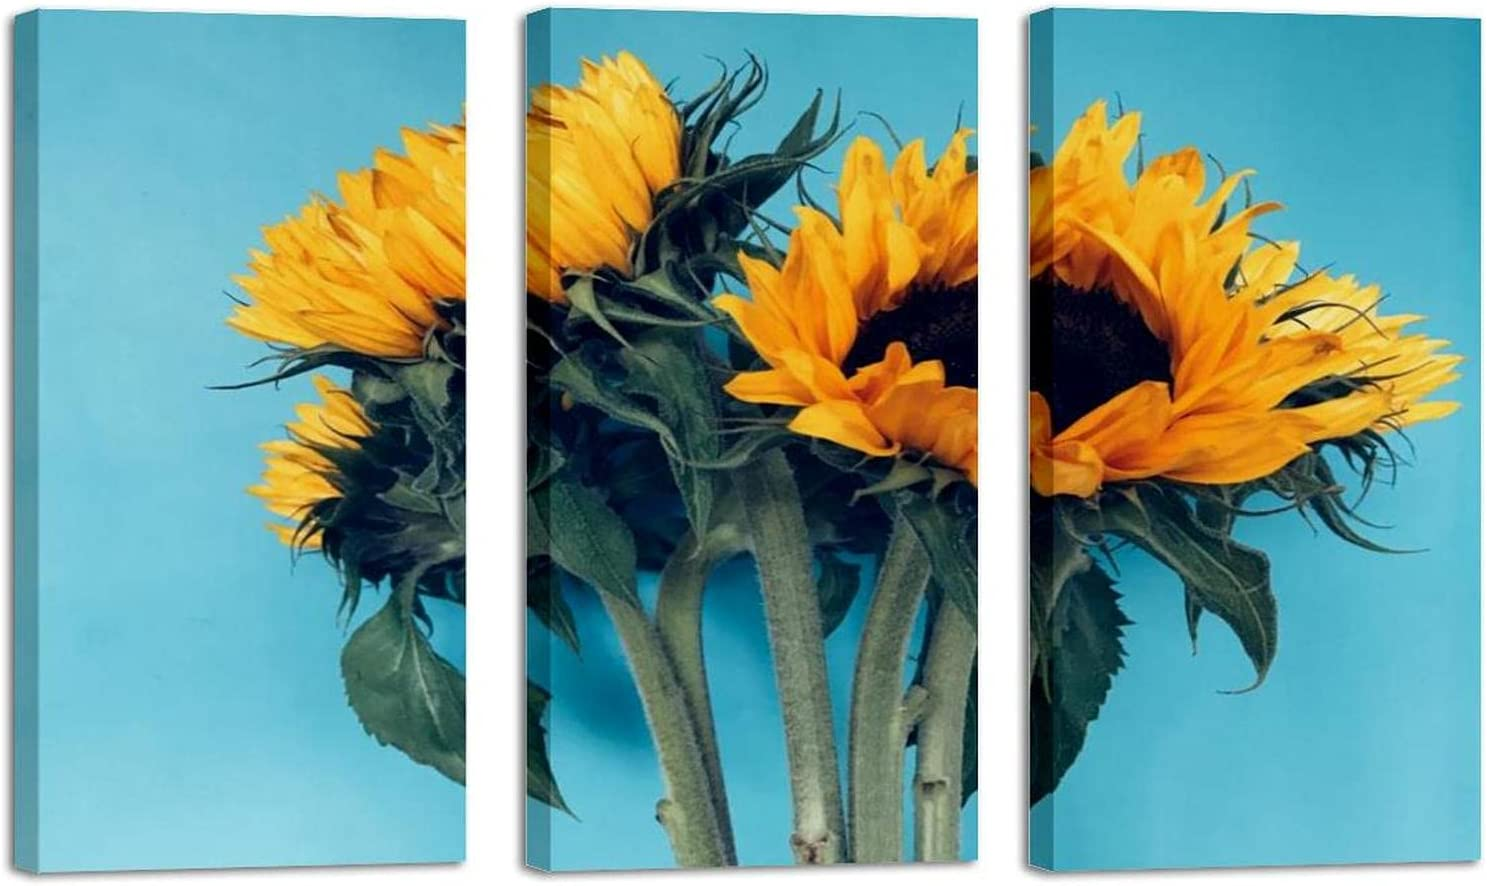 3Pcs Finally popular brand Sunflower Blue Wall safety Art Oil Print The On Canva Painting